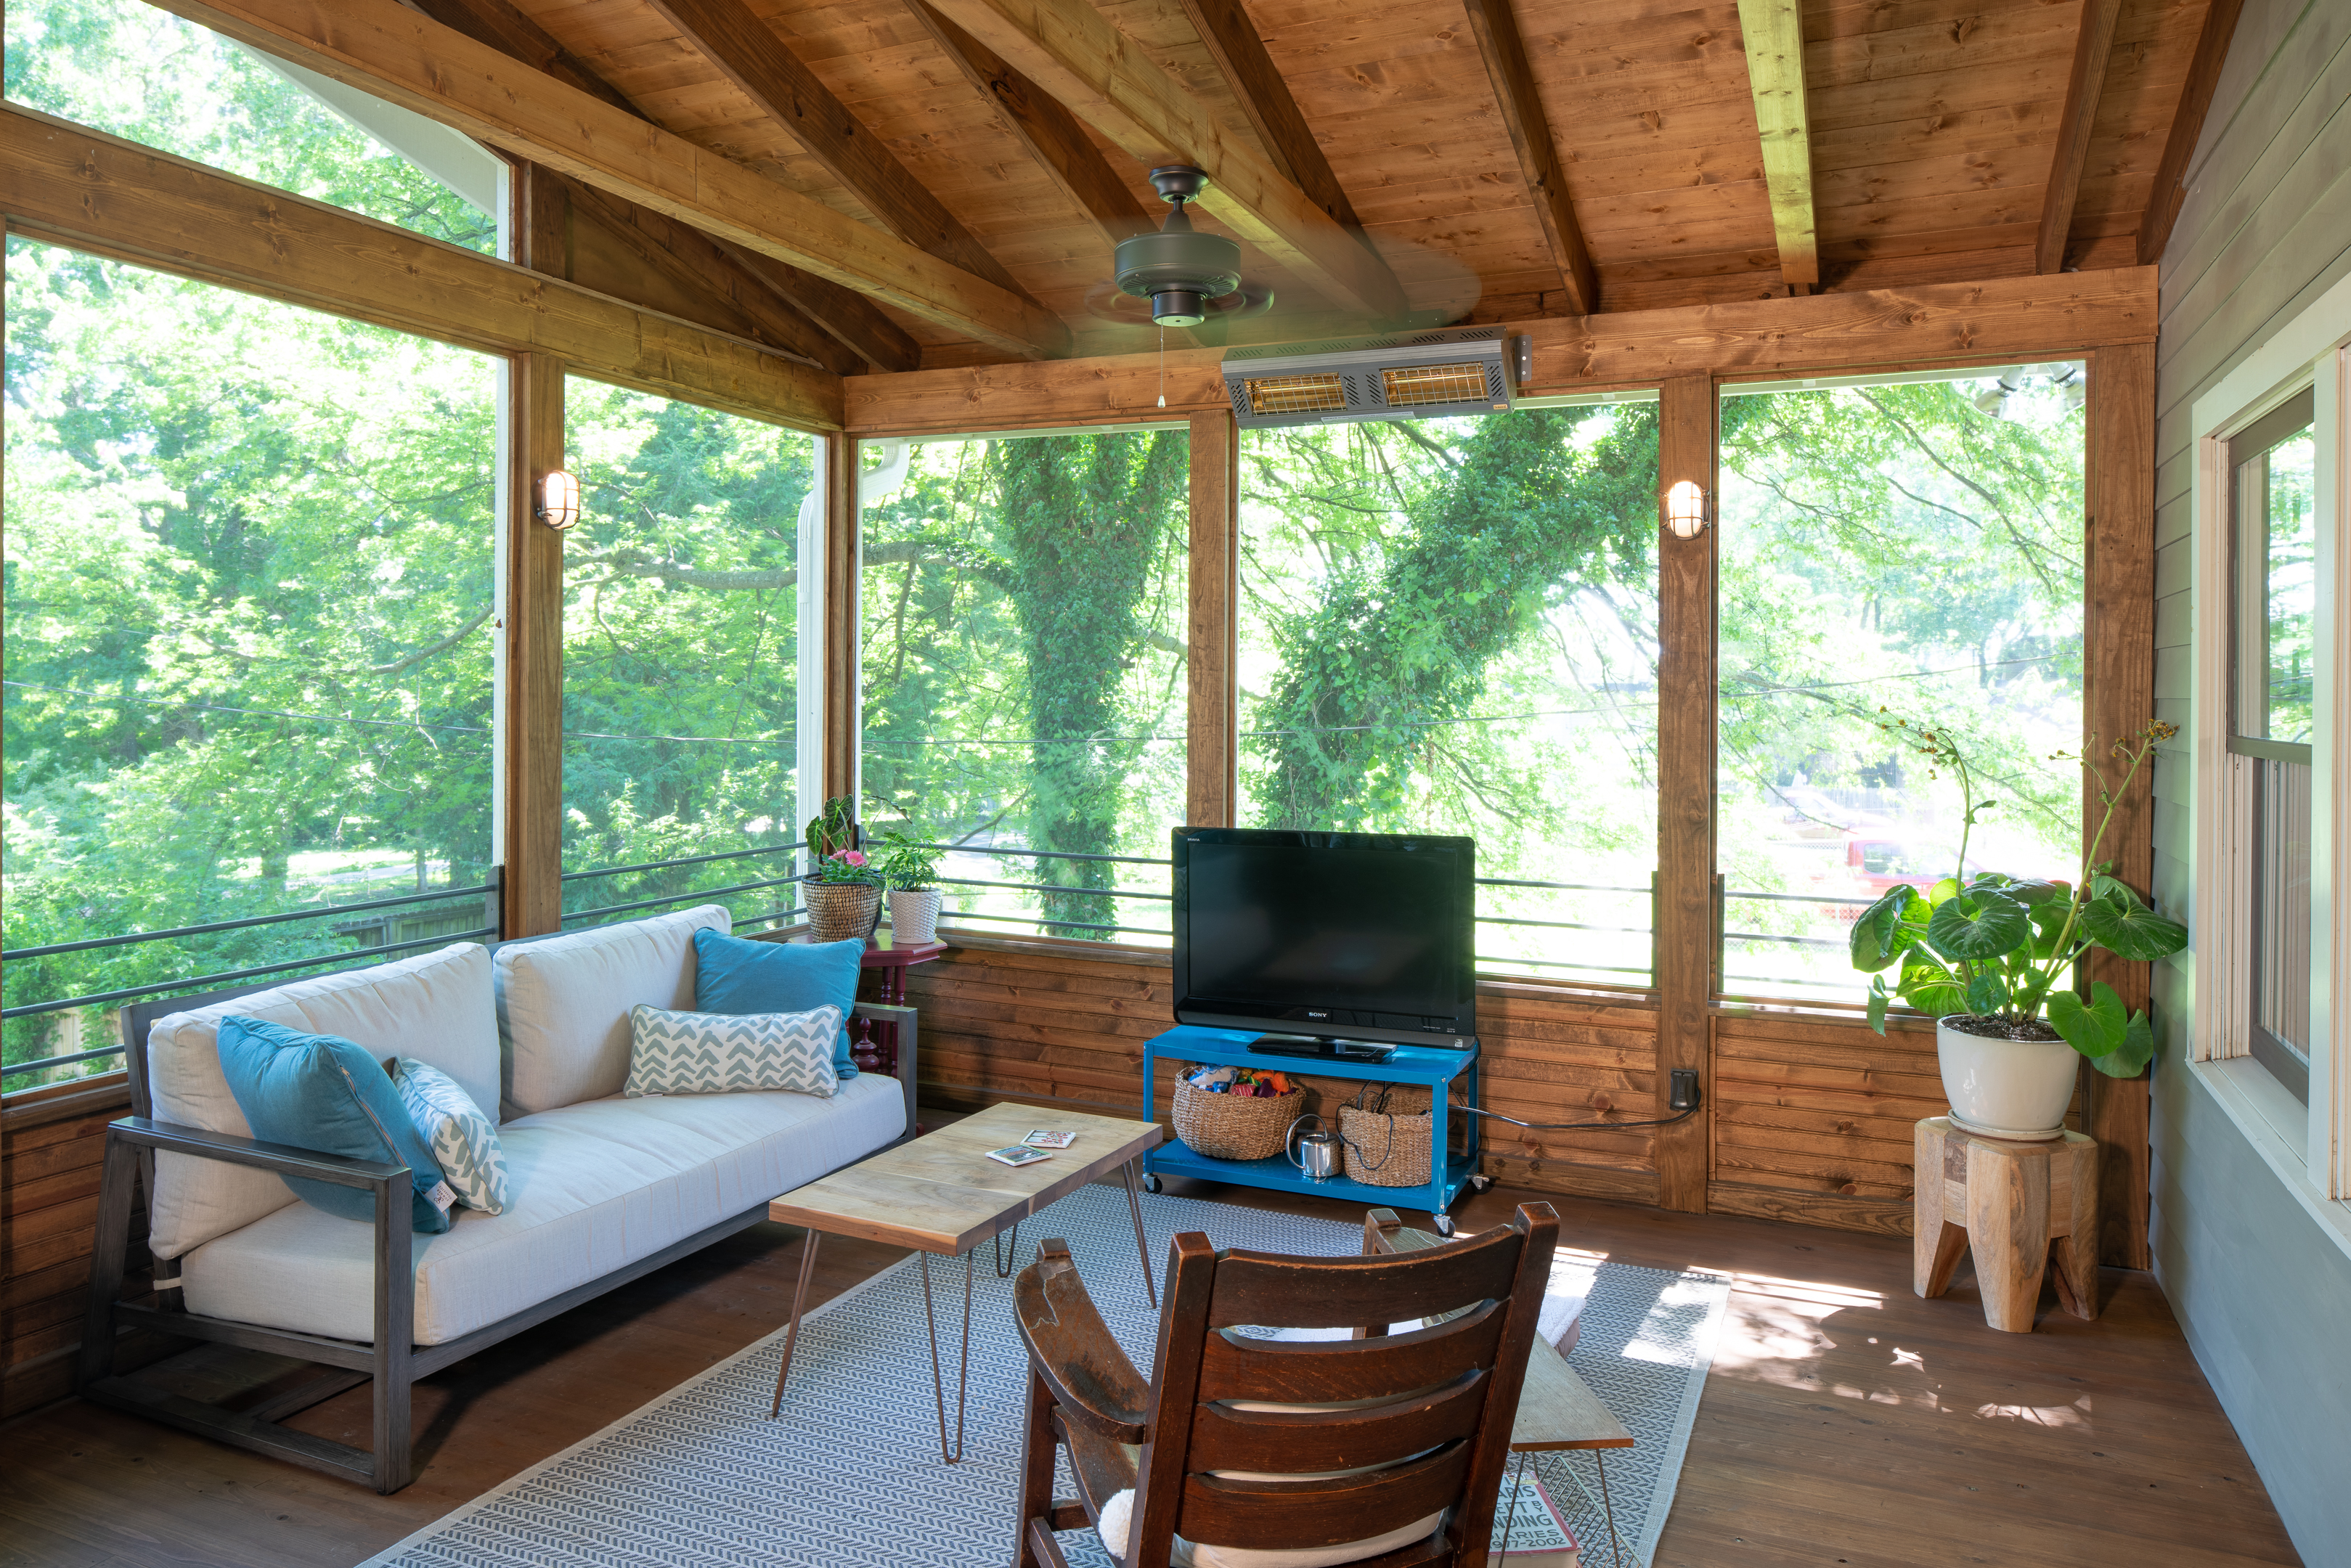 The Porch Company Says Decks Can Be Great But A Screened